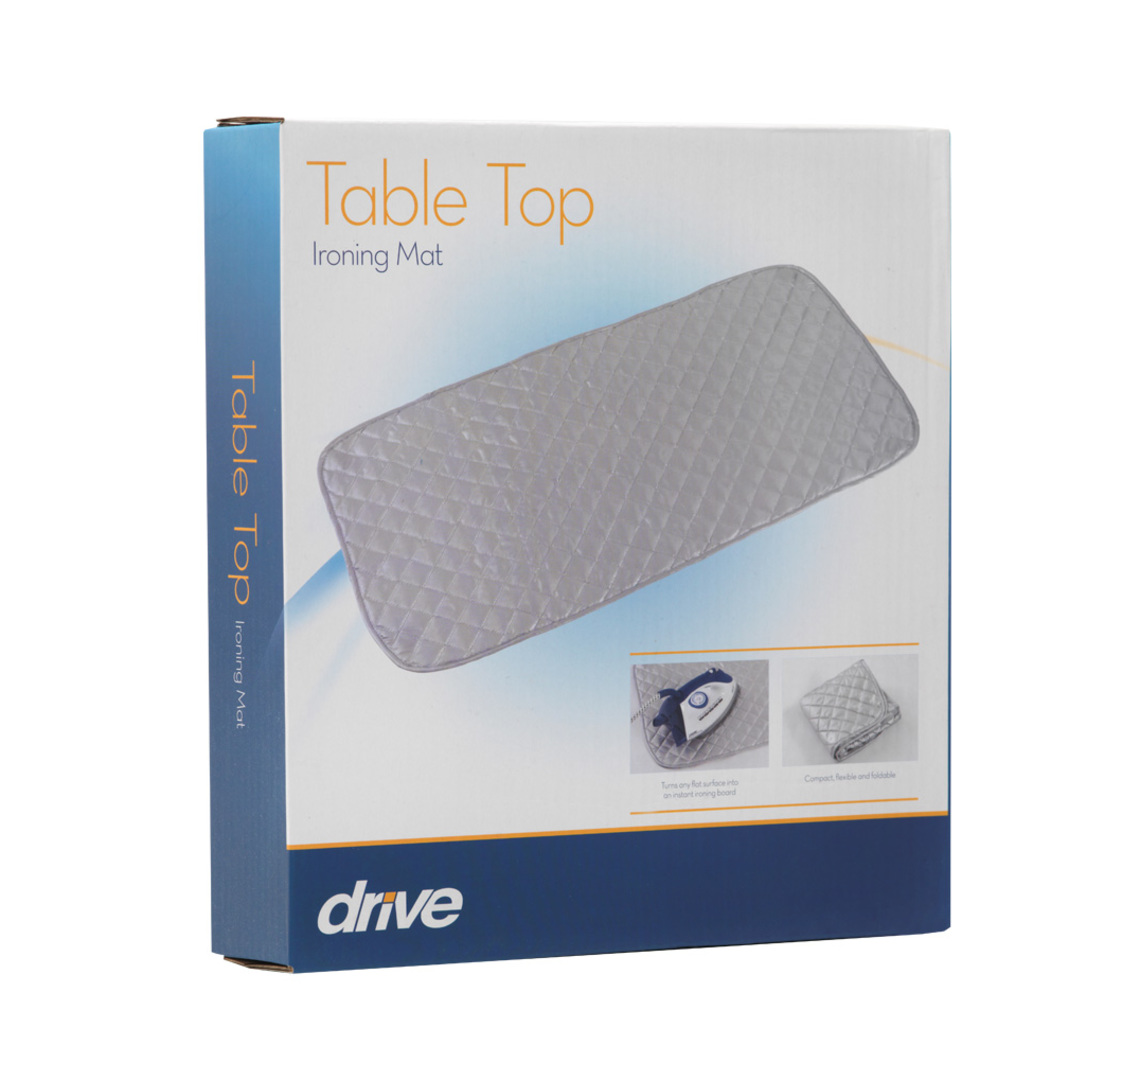 ... Table Top Iron Mat Pack